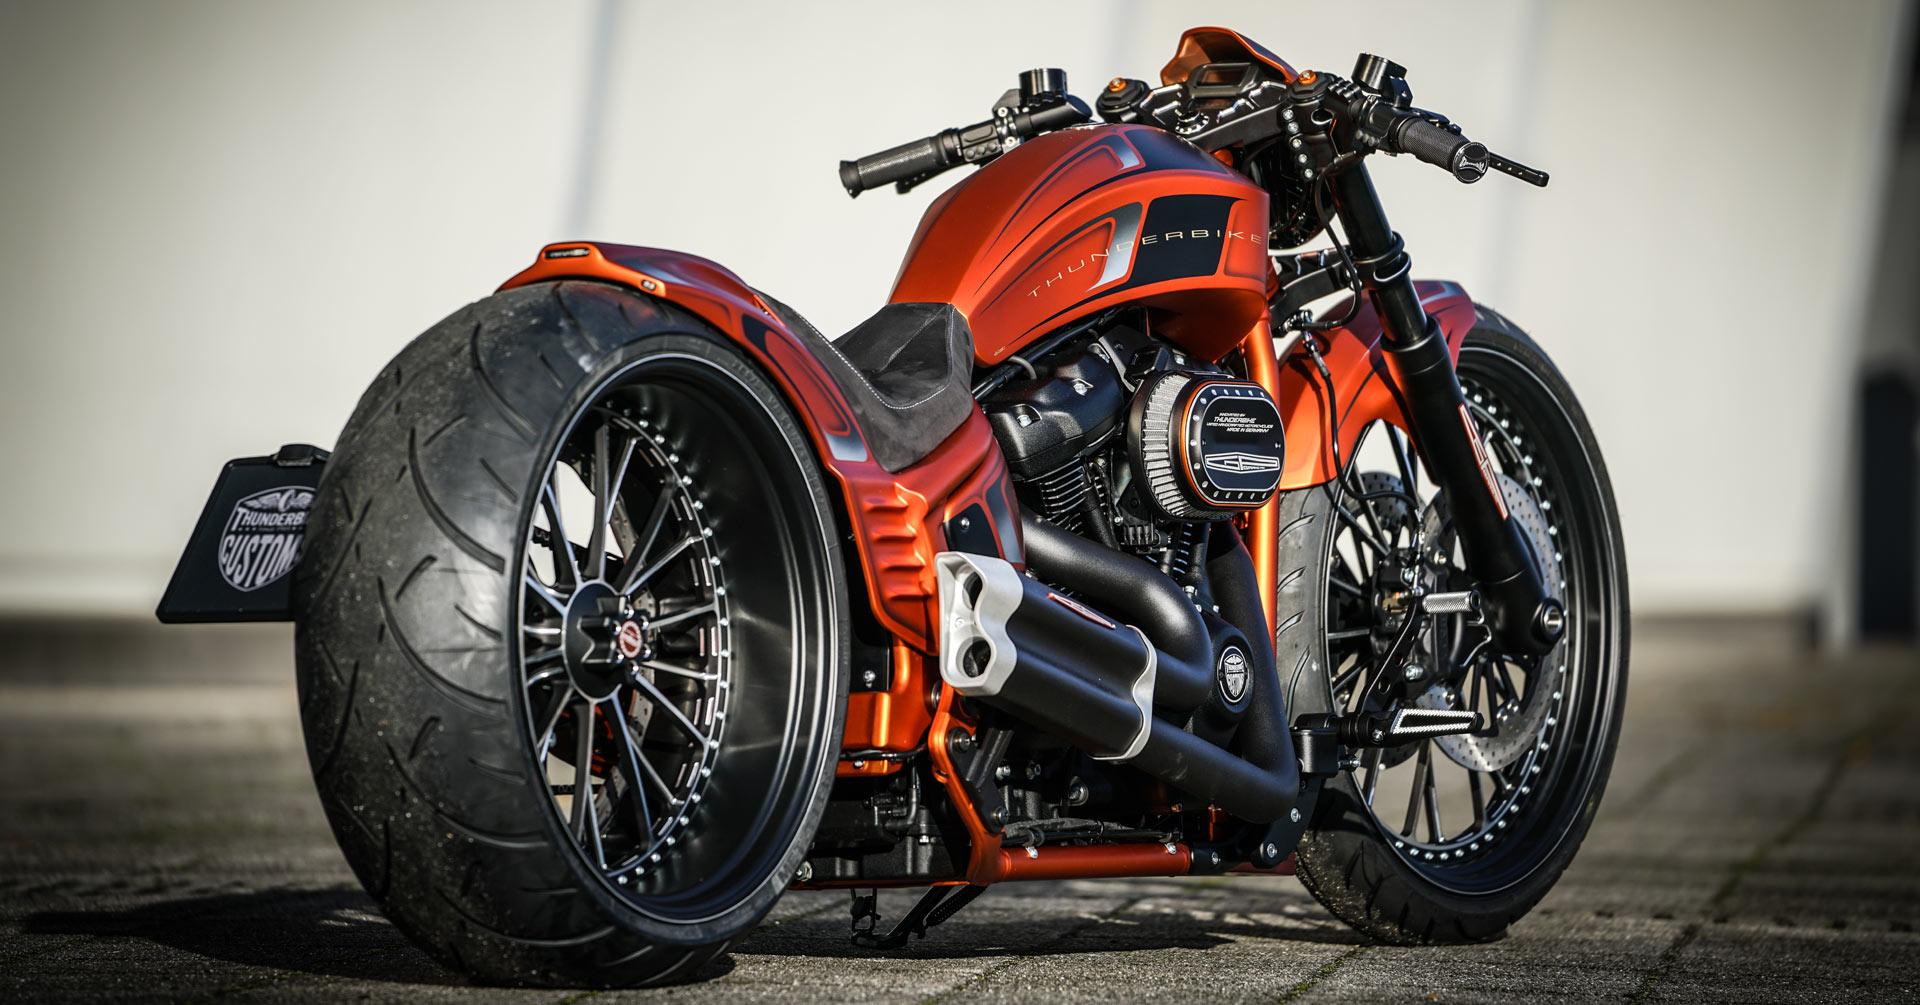 Harley Davidson Softail Umbauten Bei Thunderbike Customs